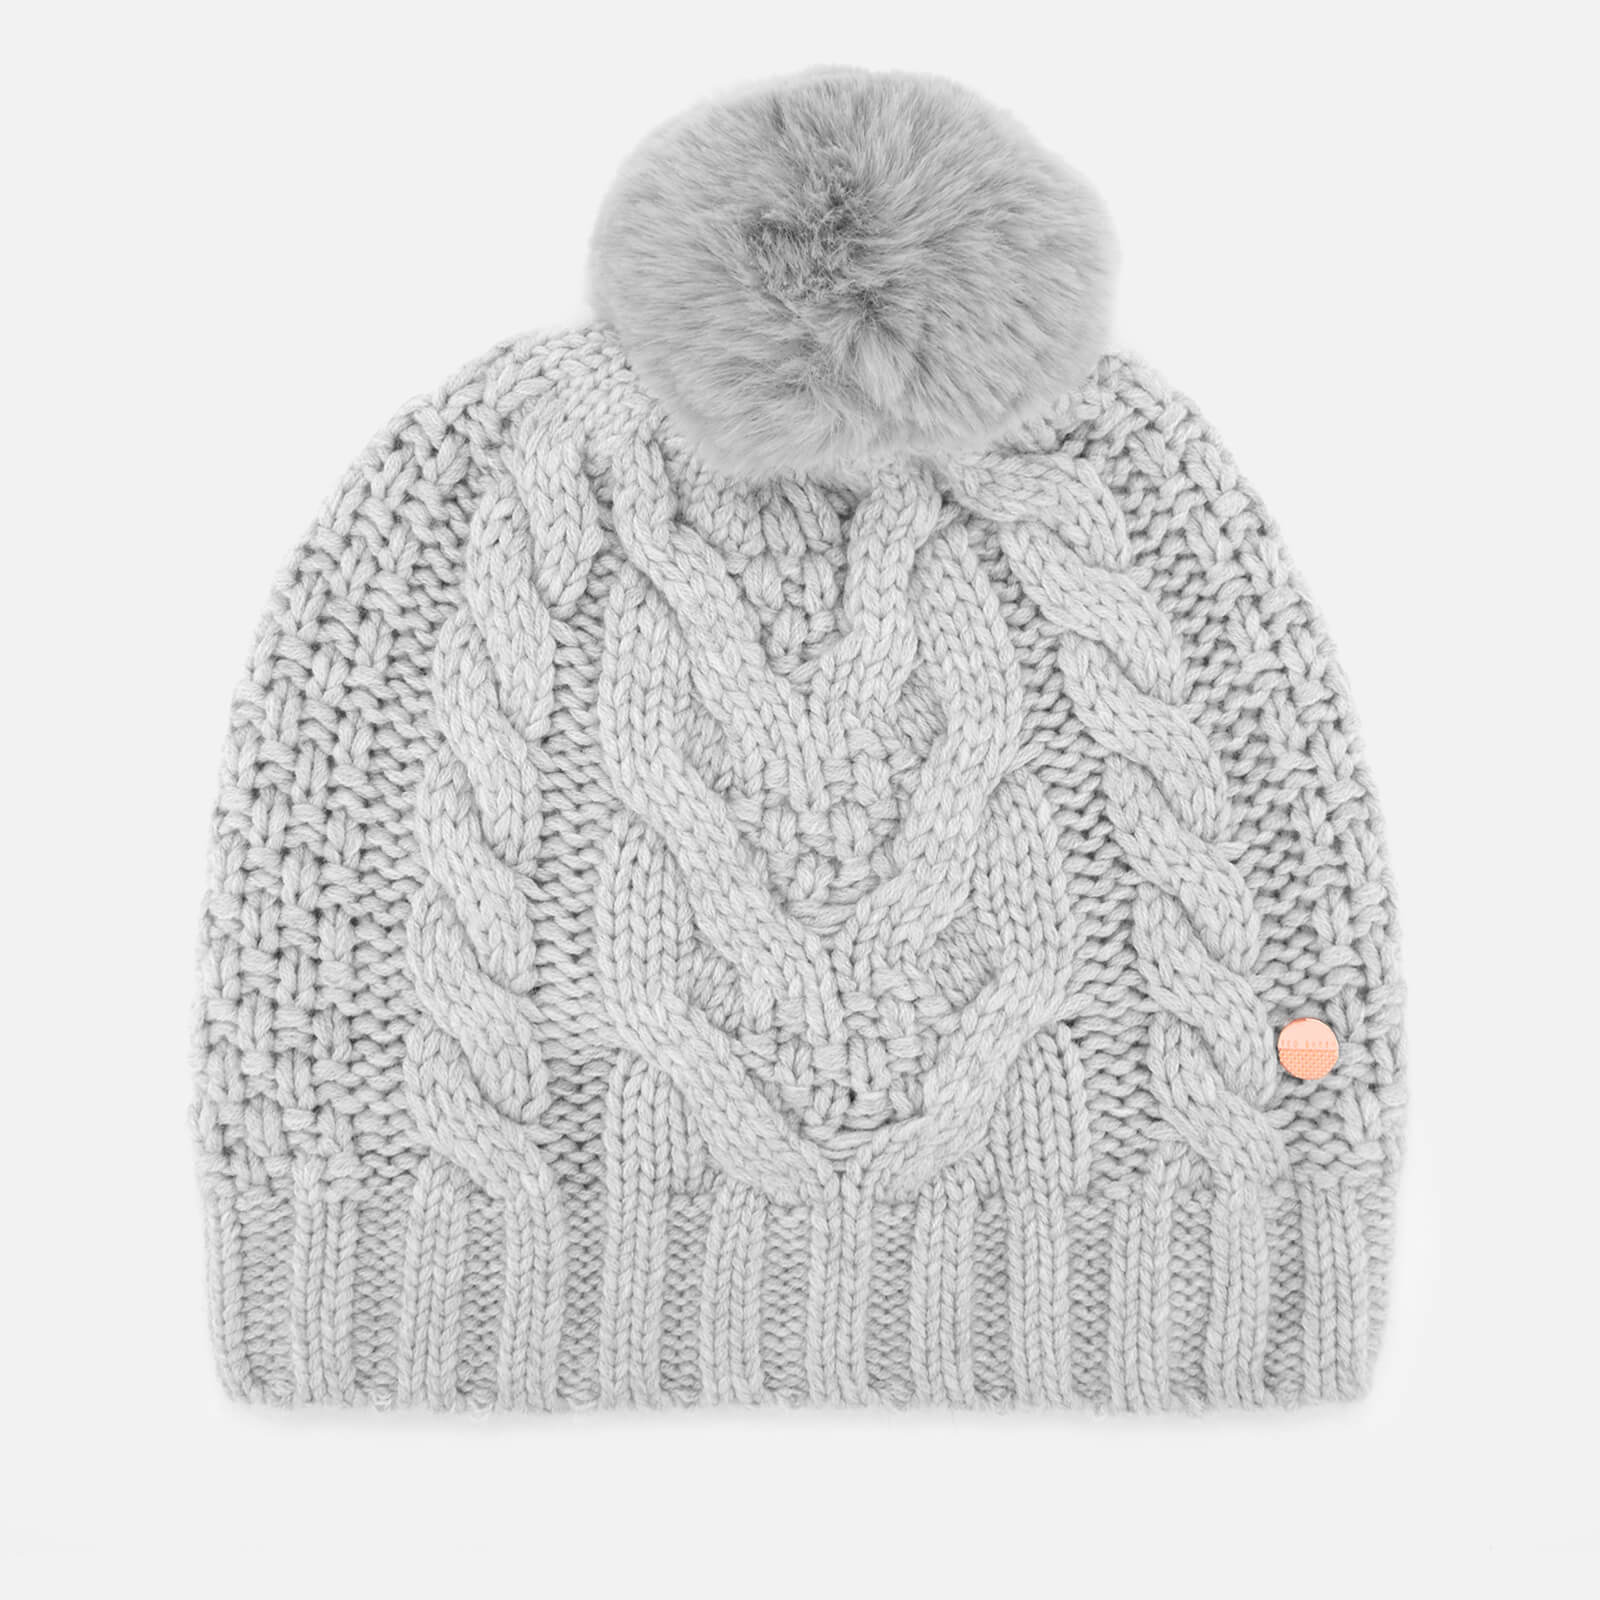 b0454ae8e33 Ted Baker Women s Quirsa Cable Knit Pom Hat - Light Grey Womens Accessories